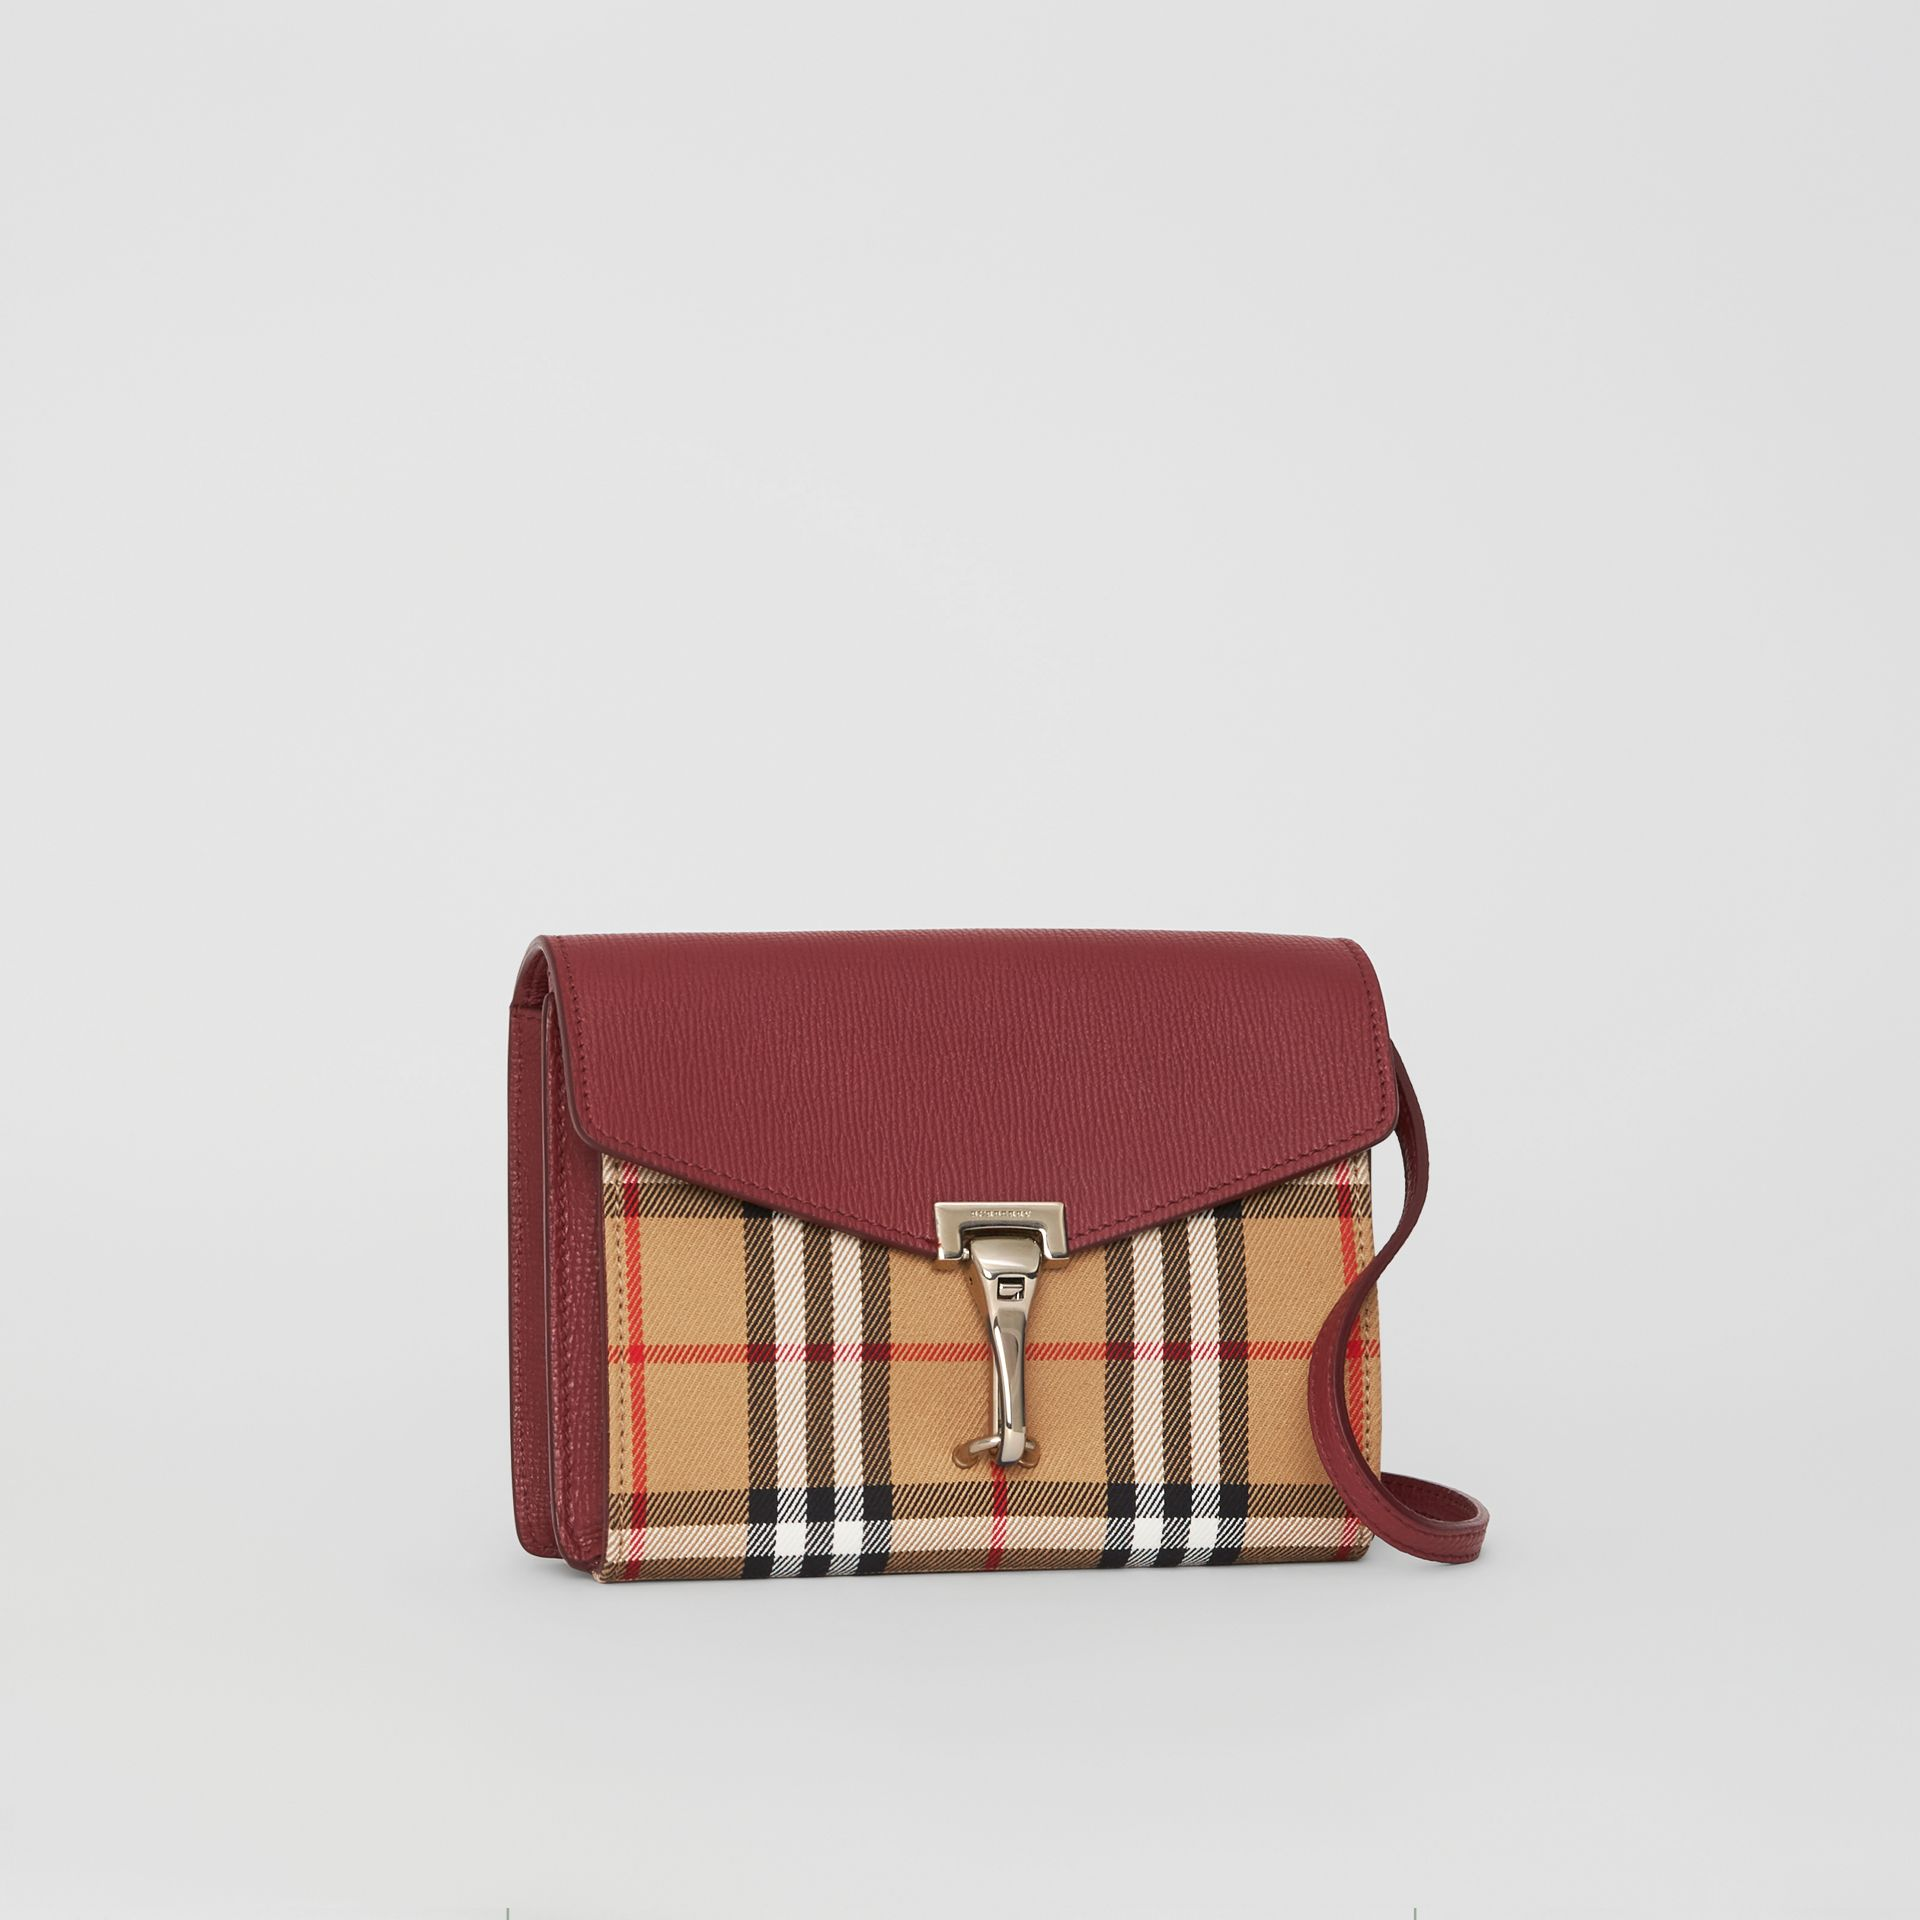 Mini Leather and Vintage Check Crossbody Bag in Crimson - Women | Burberry - gallery image 4